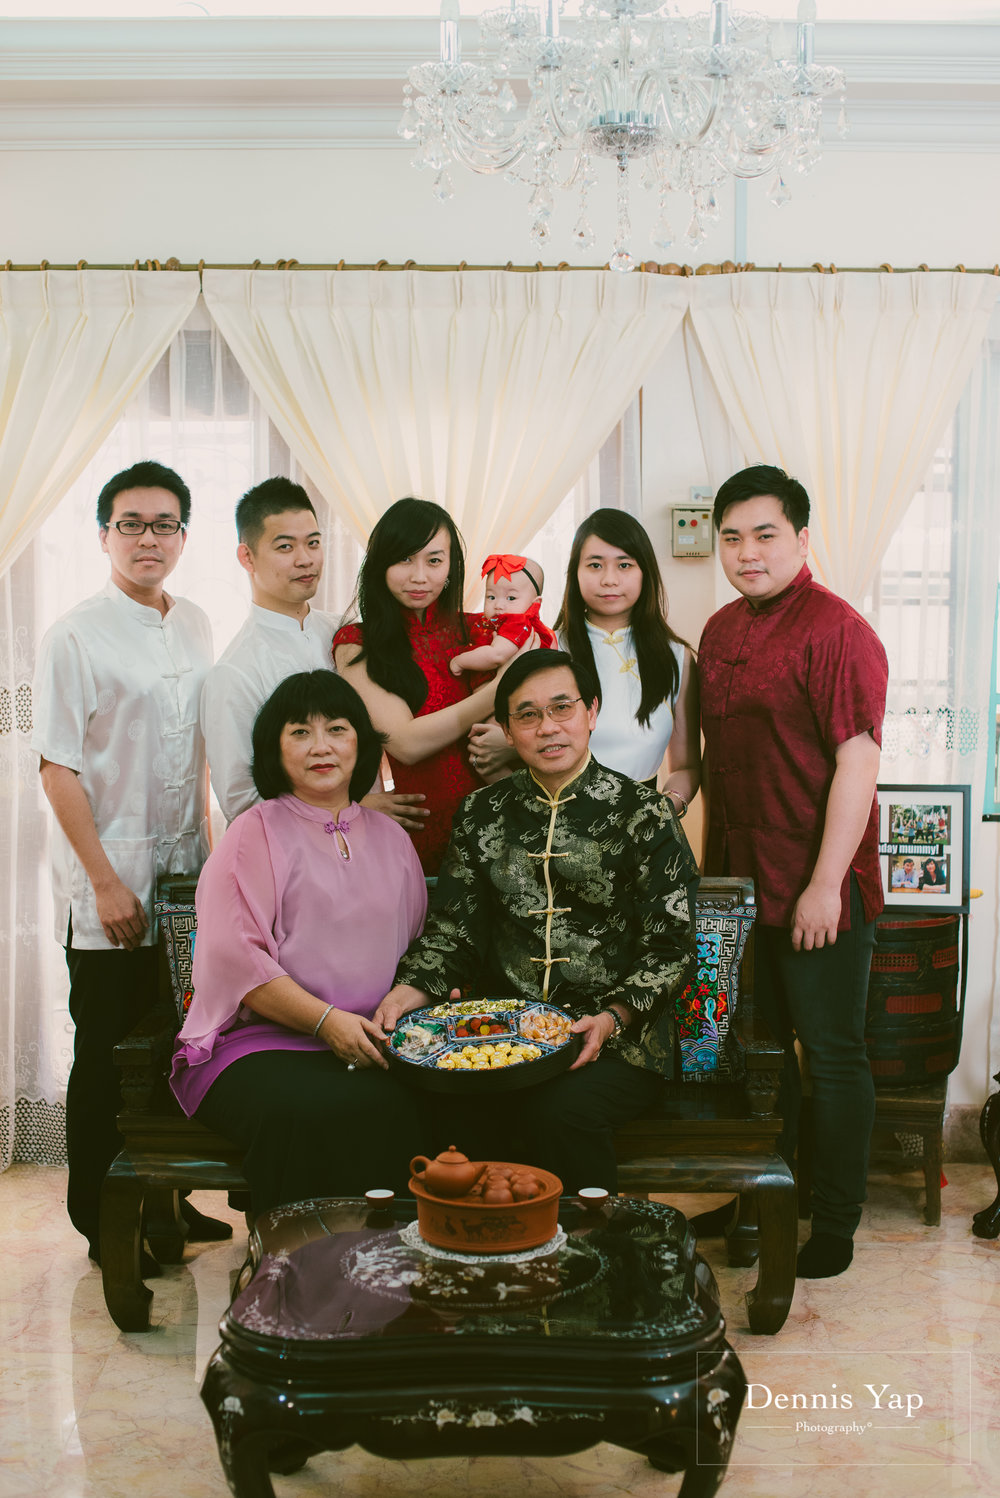 Chua Family Portrait Dennis Yap Photography beloved unity CNY chinese new year-2.jpg